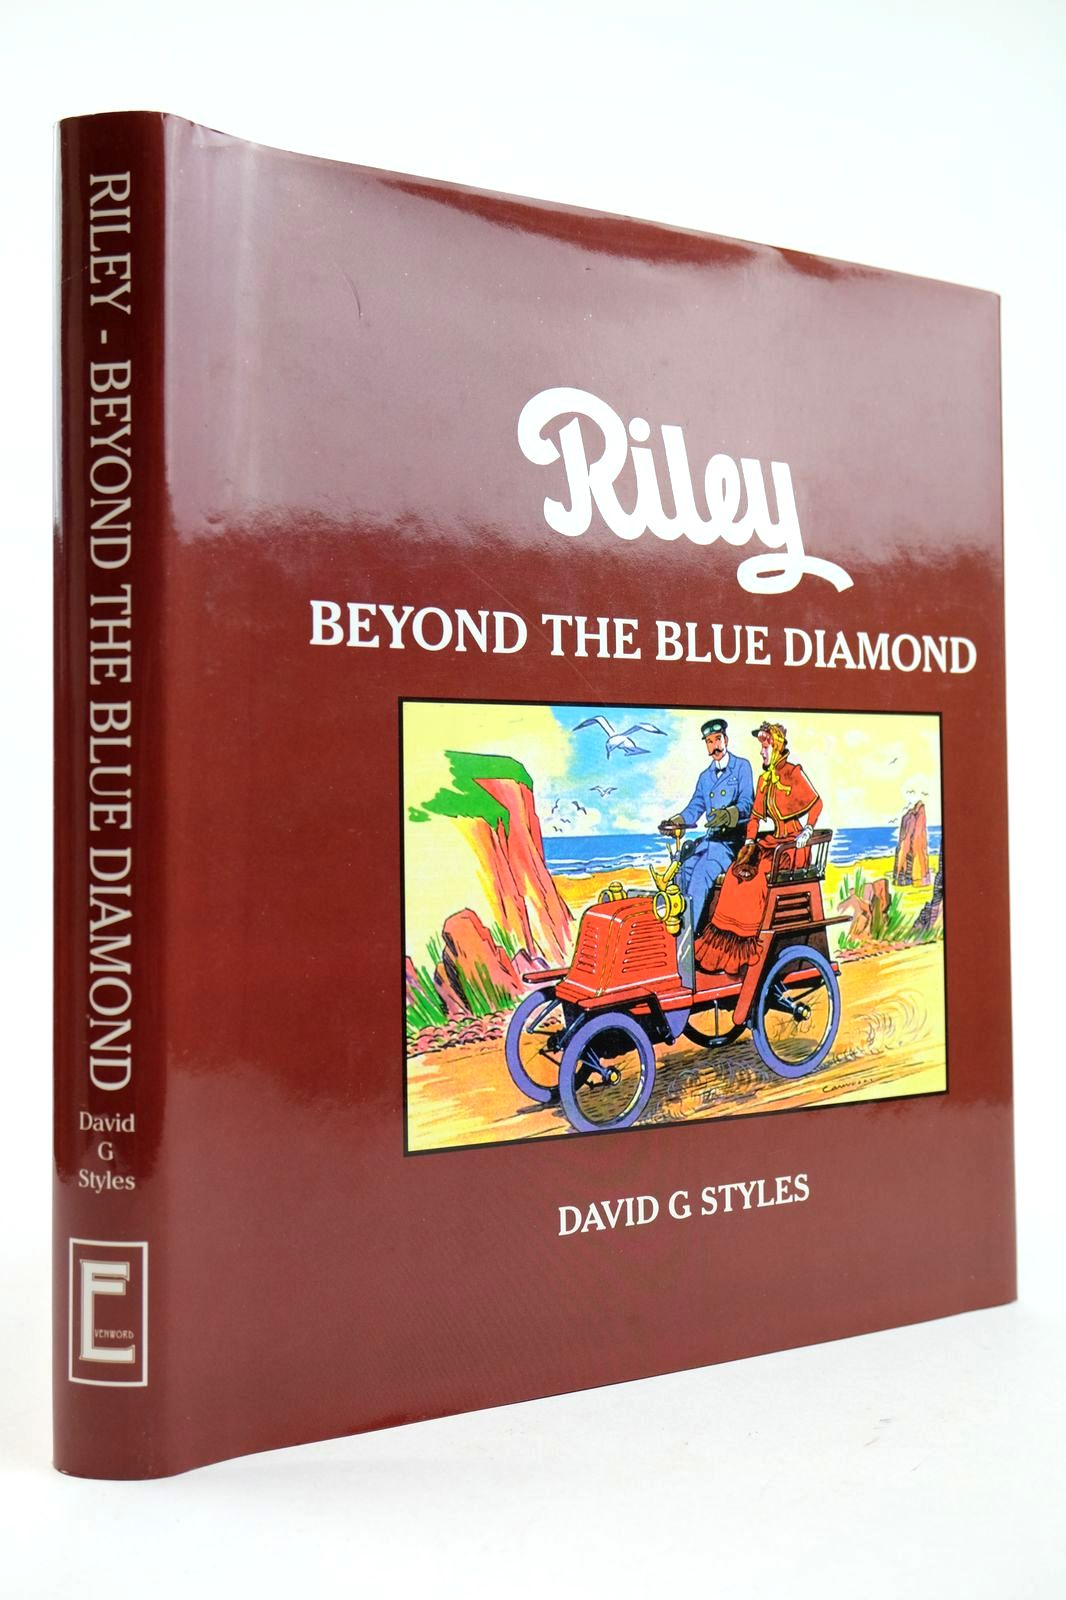 Photo of RILEY BEYOND THE BLUE DIAMOND written by Styles, David G. published by Evenword Limited (STOCK CODE: 2132567)  for sale by Stella & Rose's Books